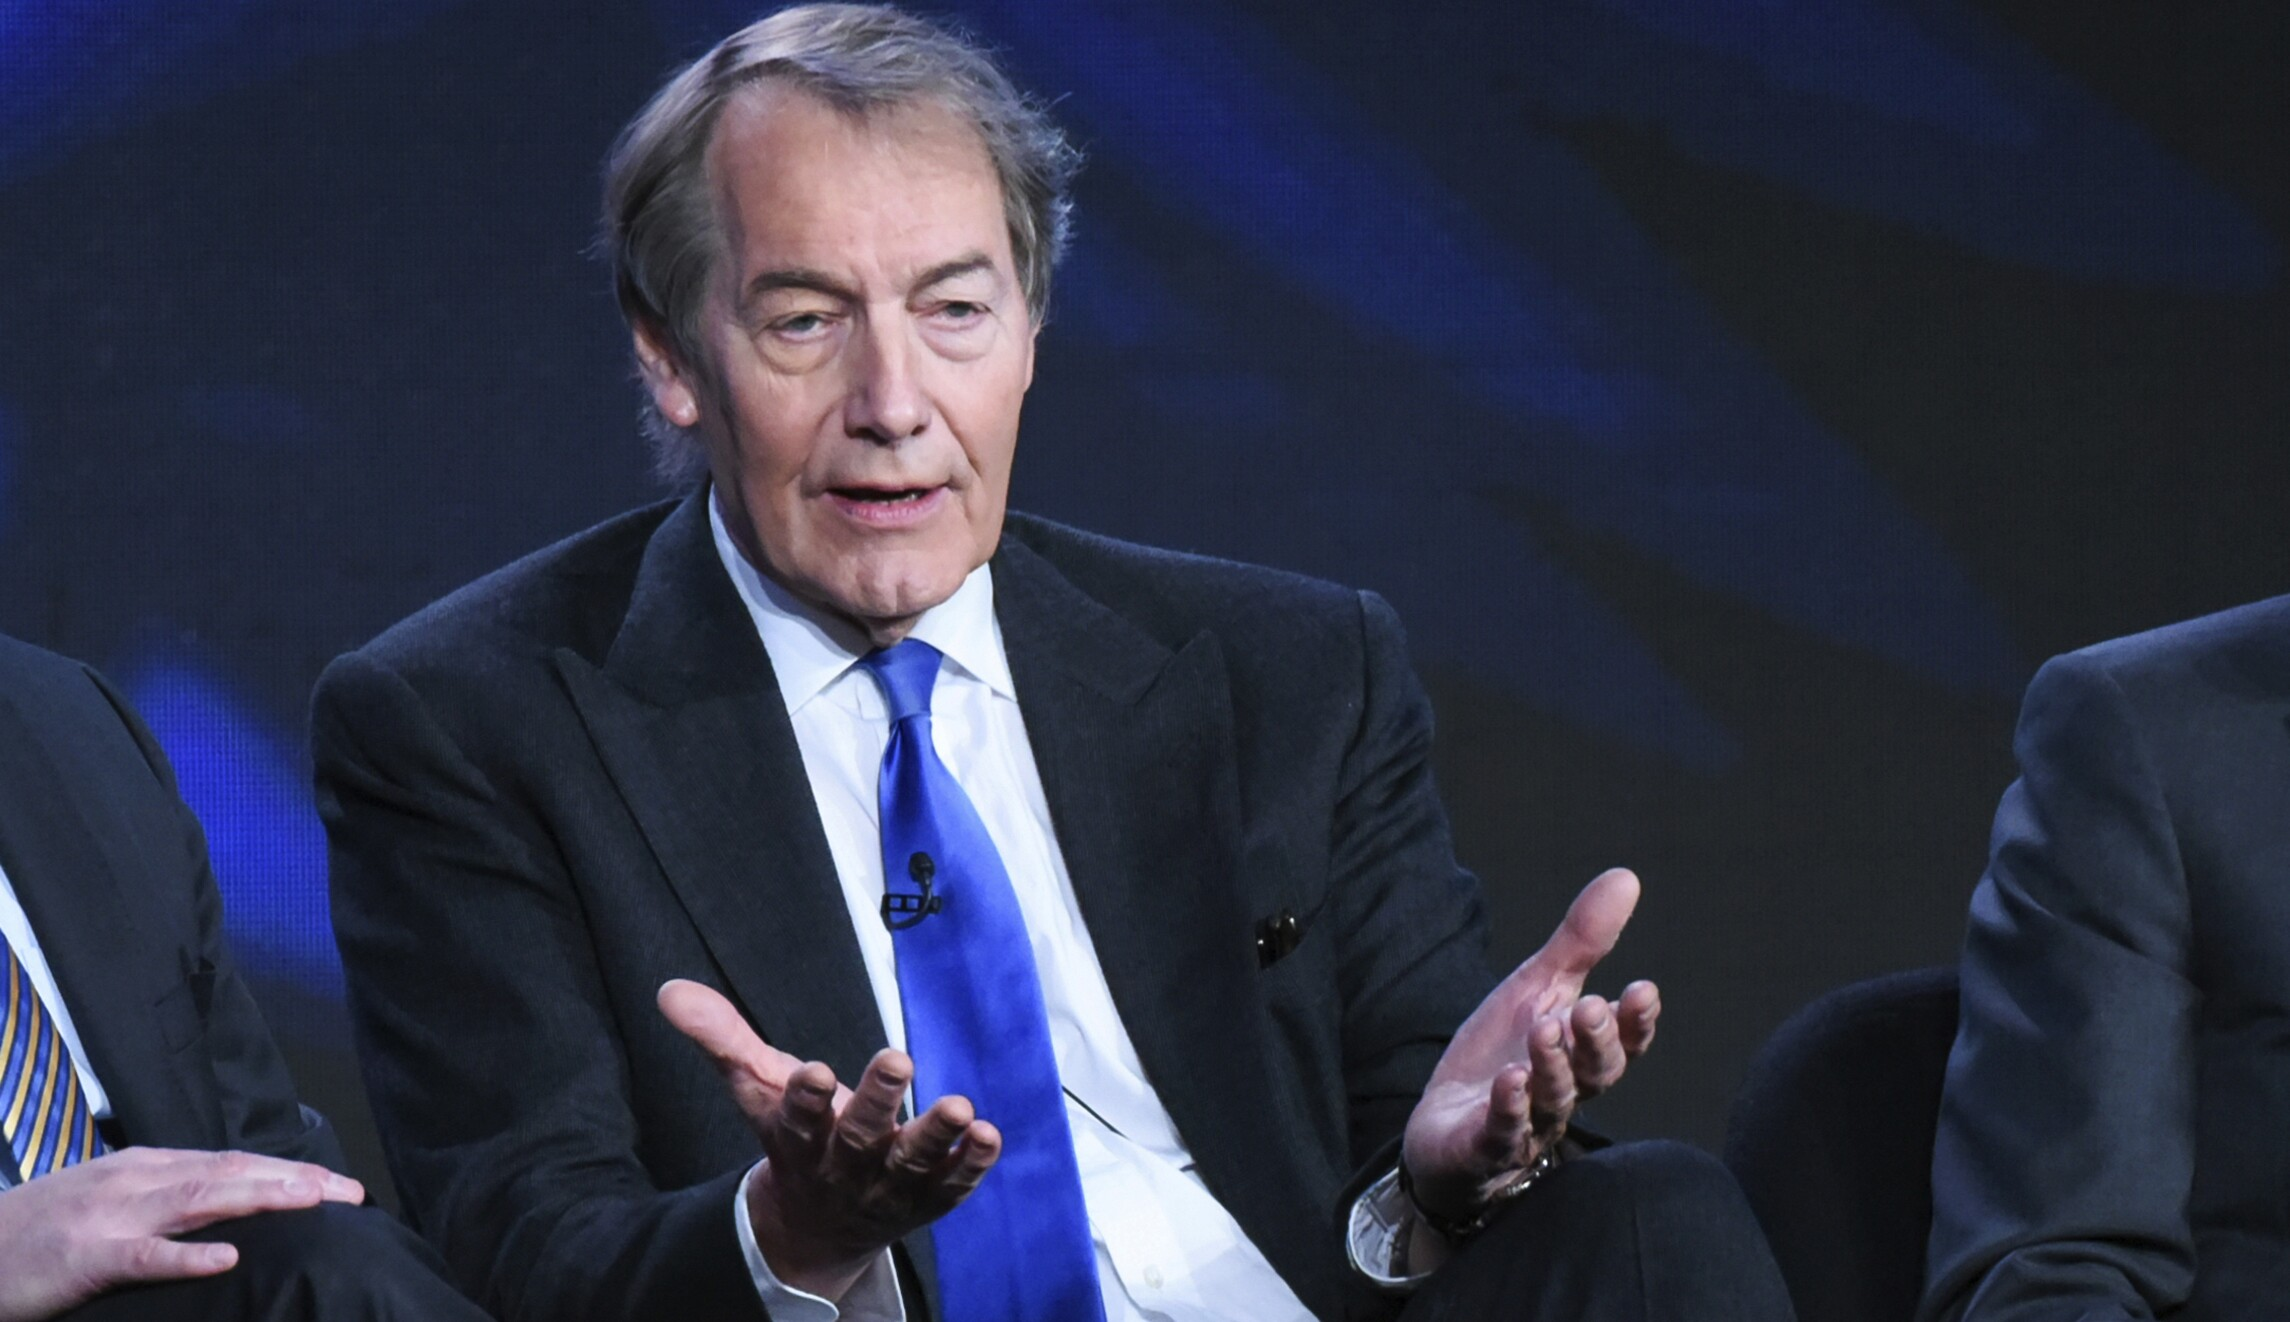 Charlie Rose Fired Cbs Pbs After >> Charlie Rose Fired By Cbs Pbs After Sexual Misconduct Allegations